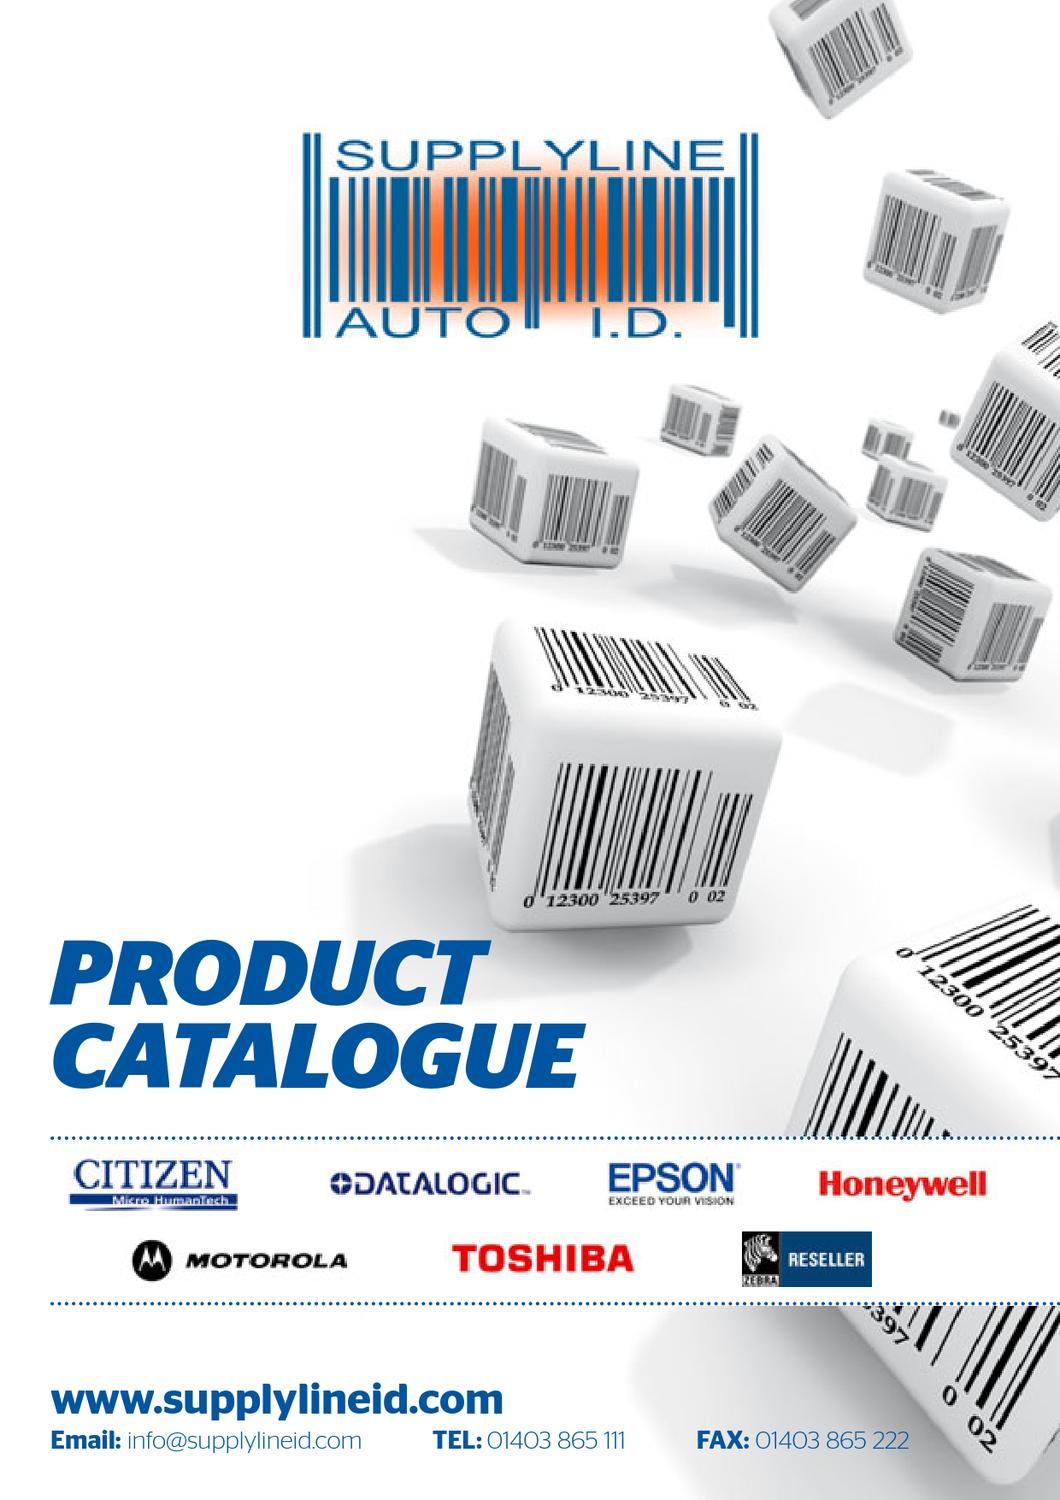 Supplyline Auto ID - Product Catalogue by BritWeb - issuu